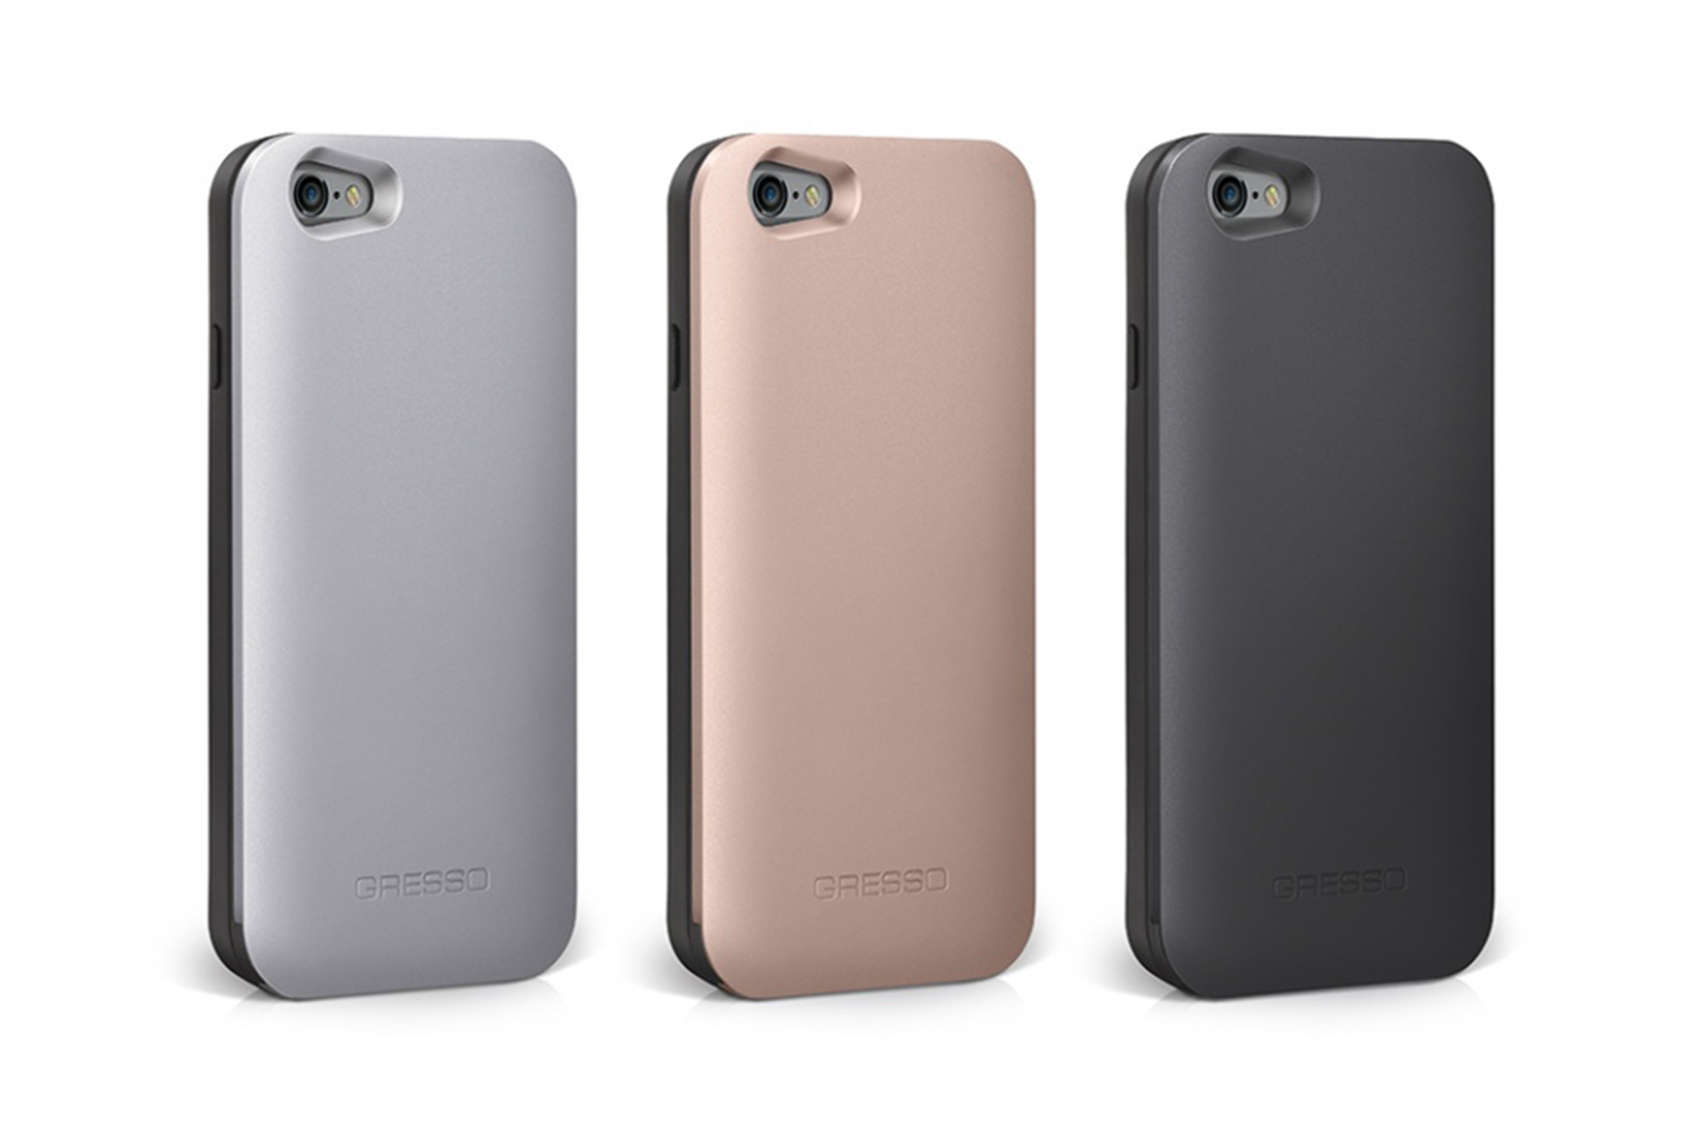 reputable site 73fd3 9ae5e Luxury aluminum case protects your iPhone, hides your credit card ...